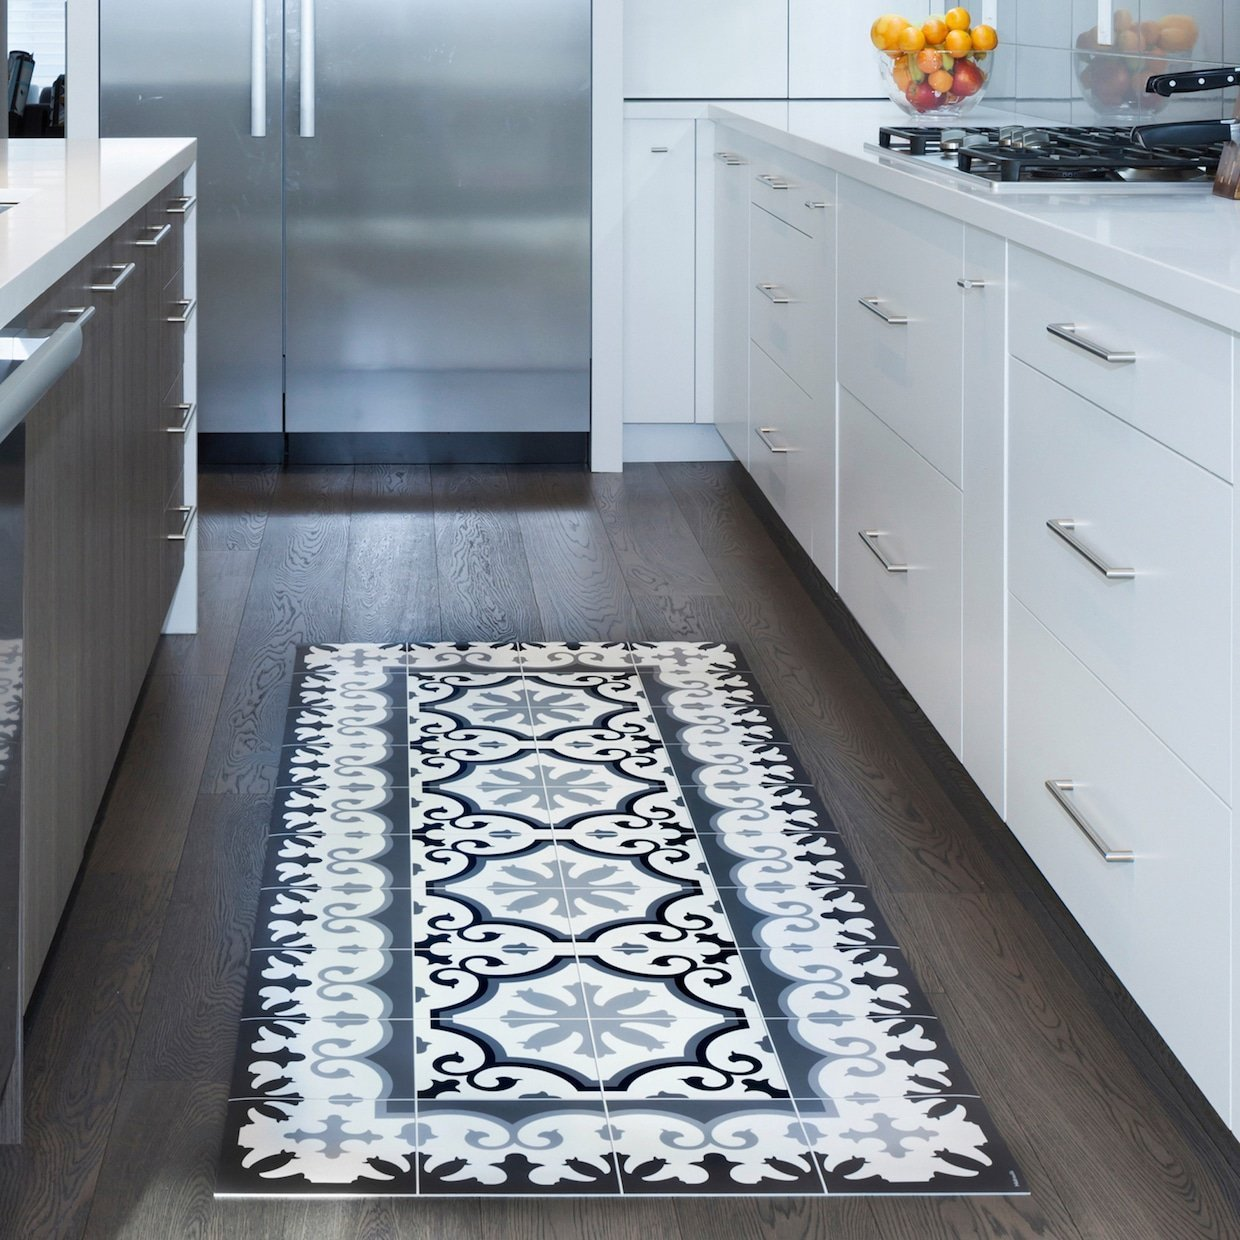 Download Wallpaper Blue And White Kitchen Mat